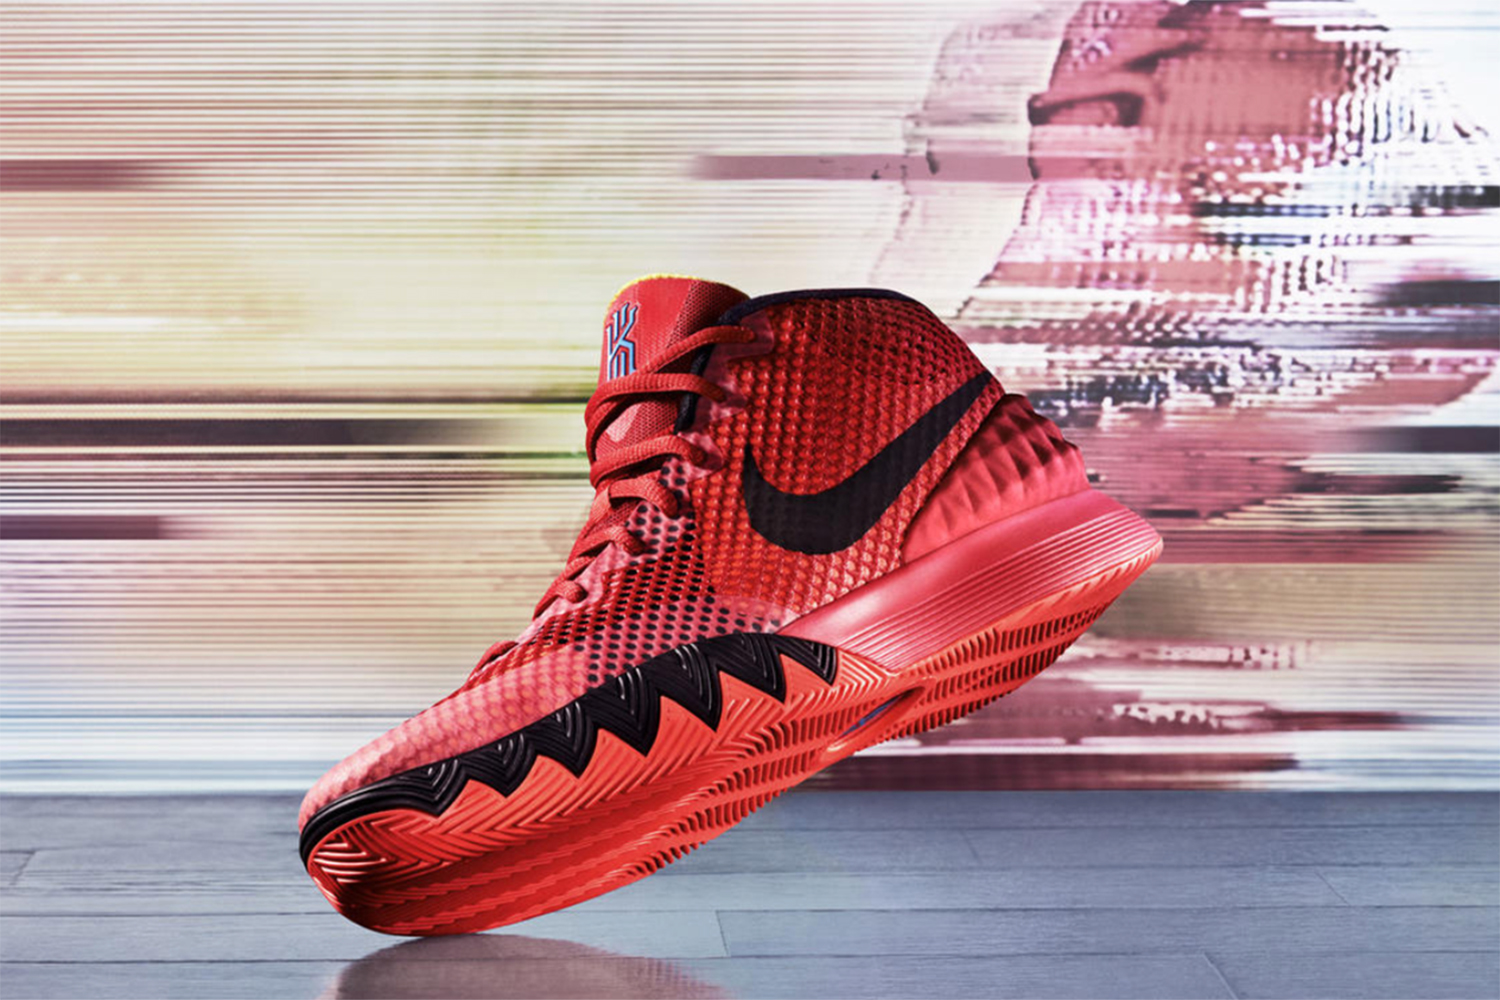 A brand-new signature shoe in the Nike line debuted in December, allowing this newcomer to the year's shoe list to crack our top 10 with its dynamic style. The KYRIE 1 features lightweight technology that includes a Hyperfuse upper—Nike's layering of multiple materials into one technology—and a grip pattern that climbs the shoe's sidewalls. Aesthetically, the Hyperfuse offers up a pebbled look not seen elsewhere in the Nike line.